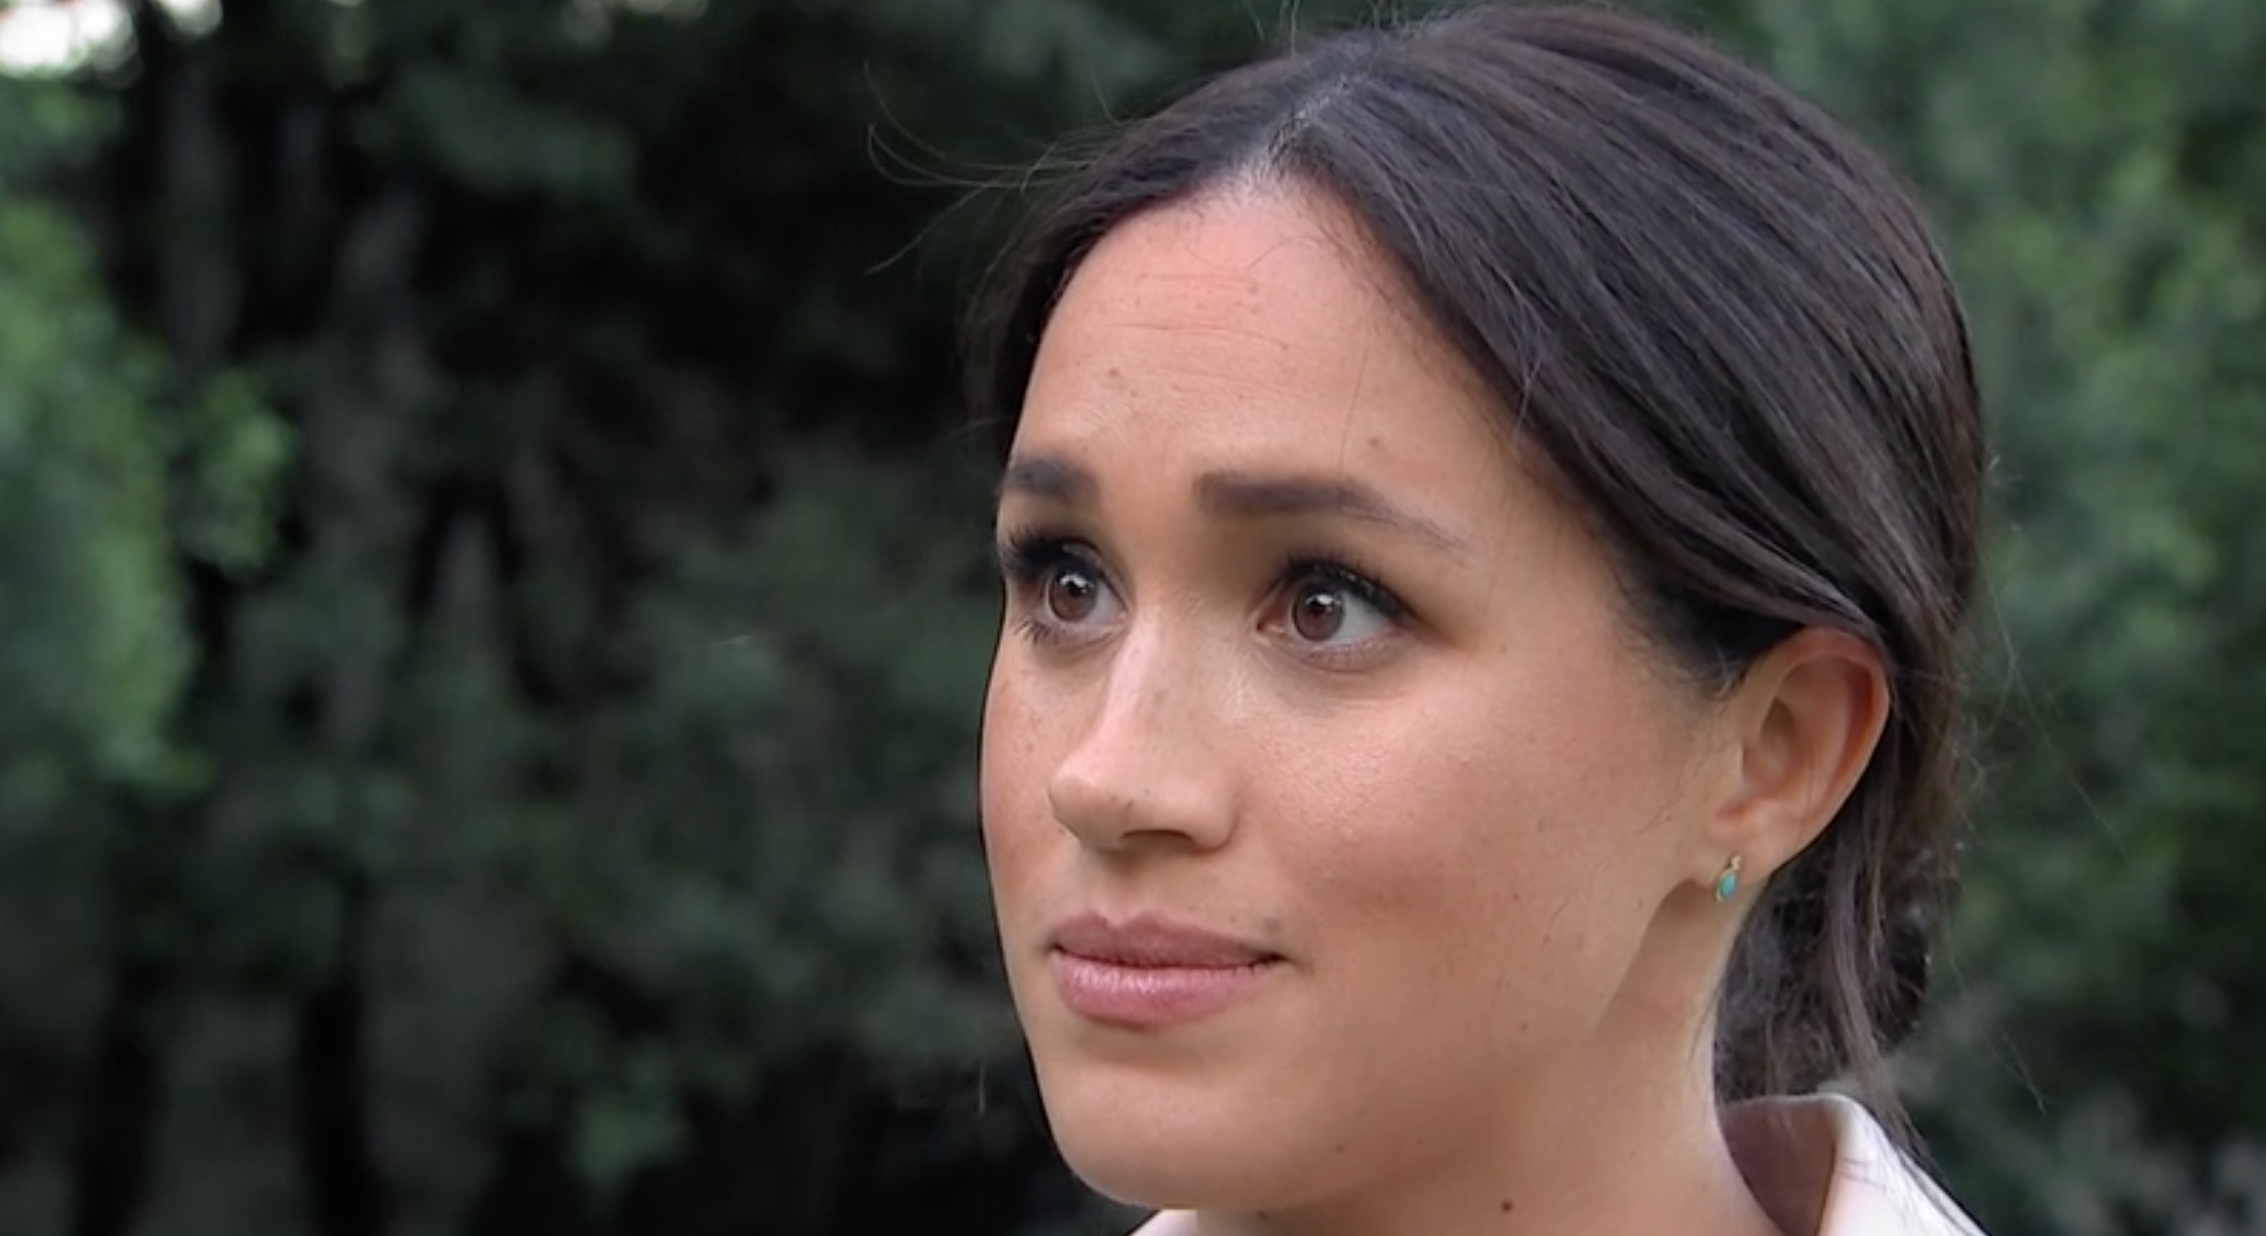 Meghan Markle Chokes Back Tears When Asked How She's Coping